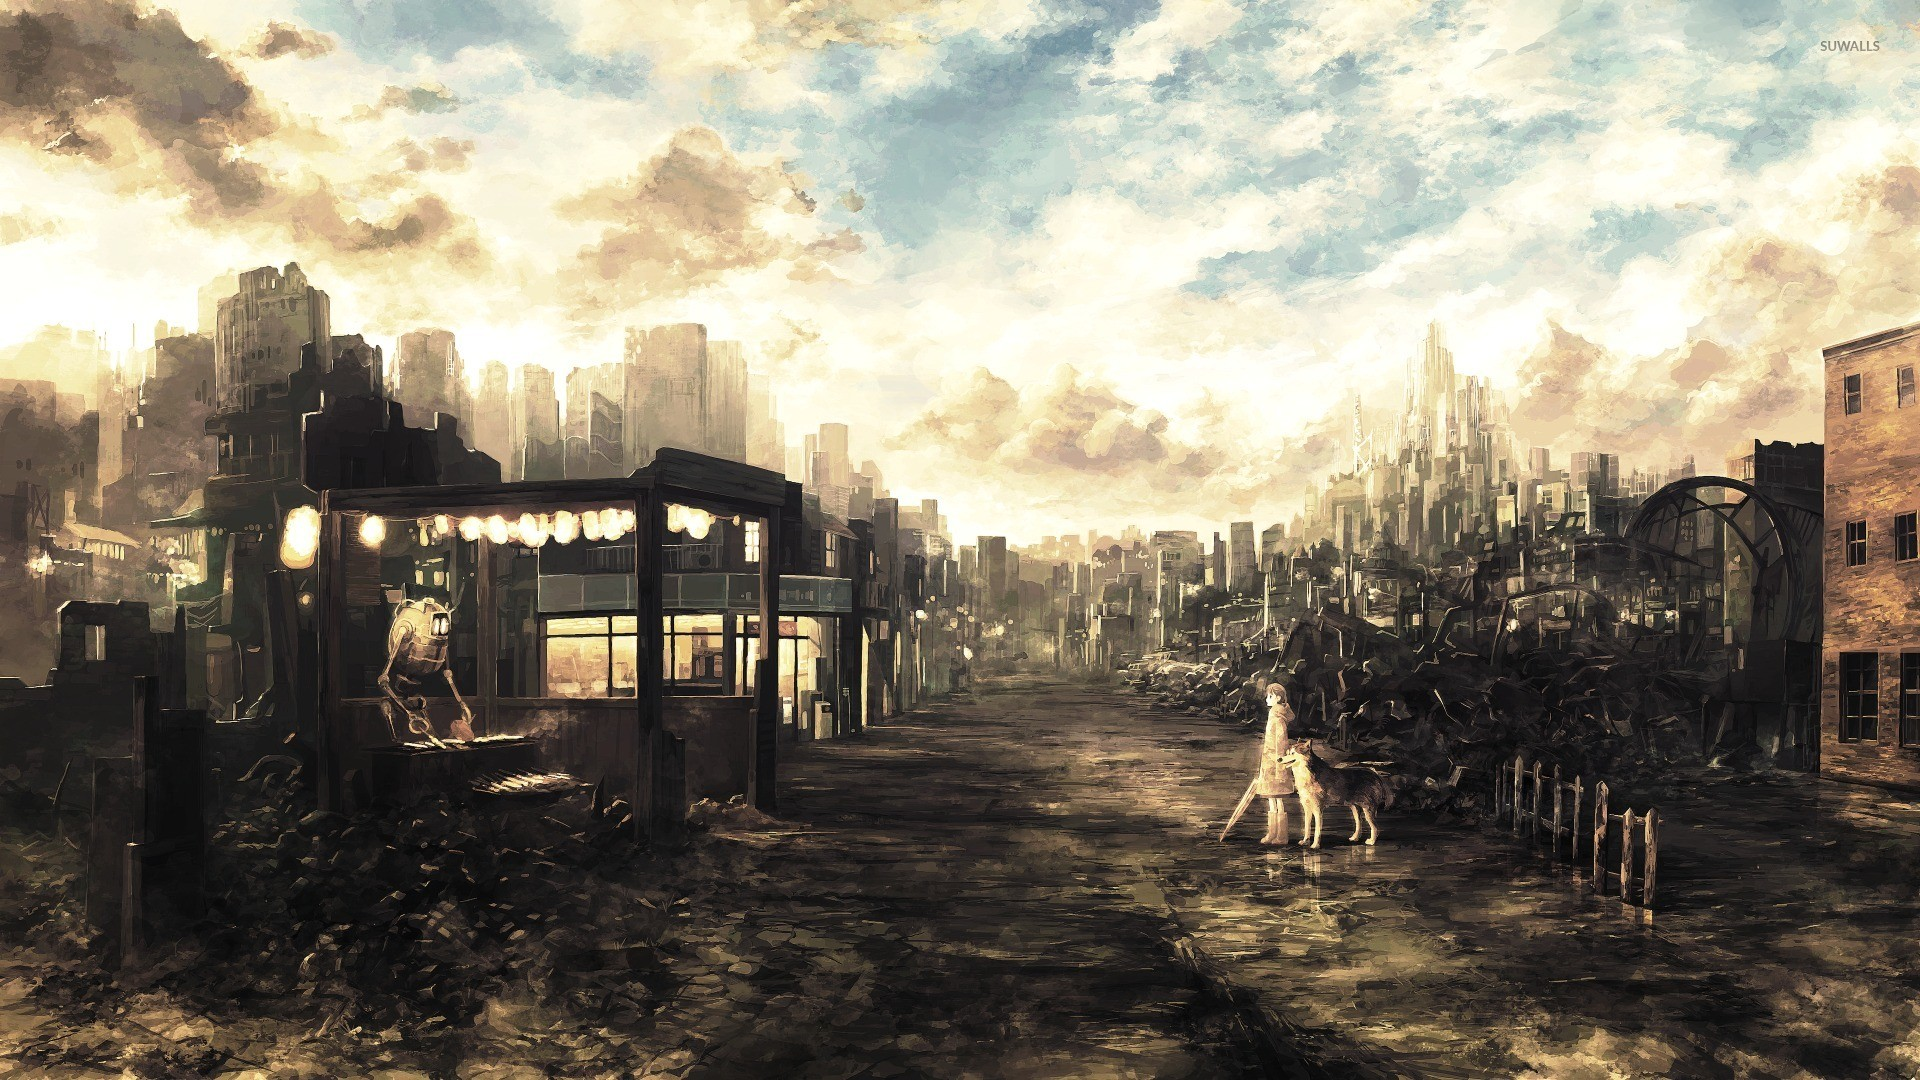 Anime City wallpaper ·① Download free beautiful wallpapers ...